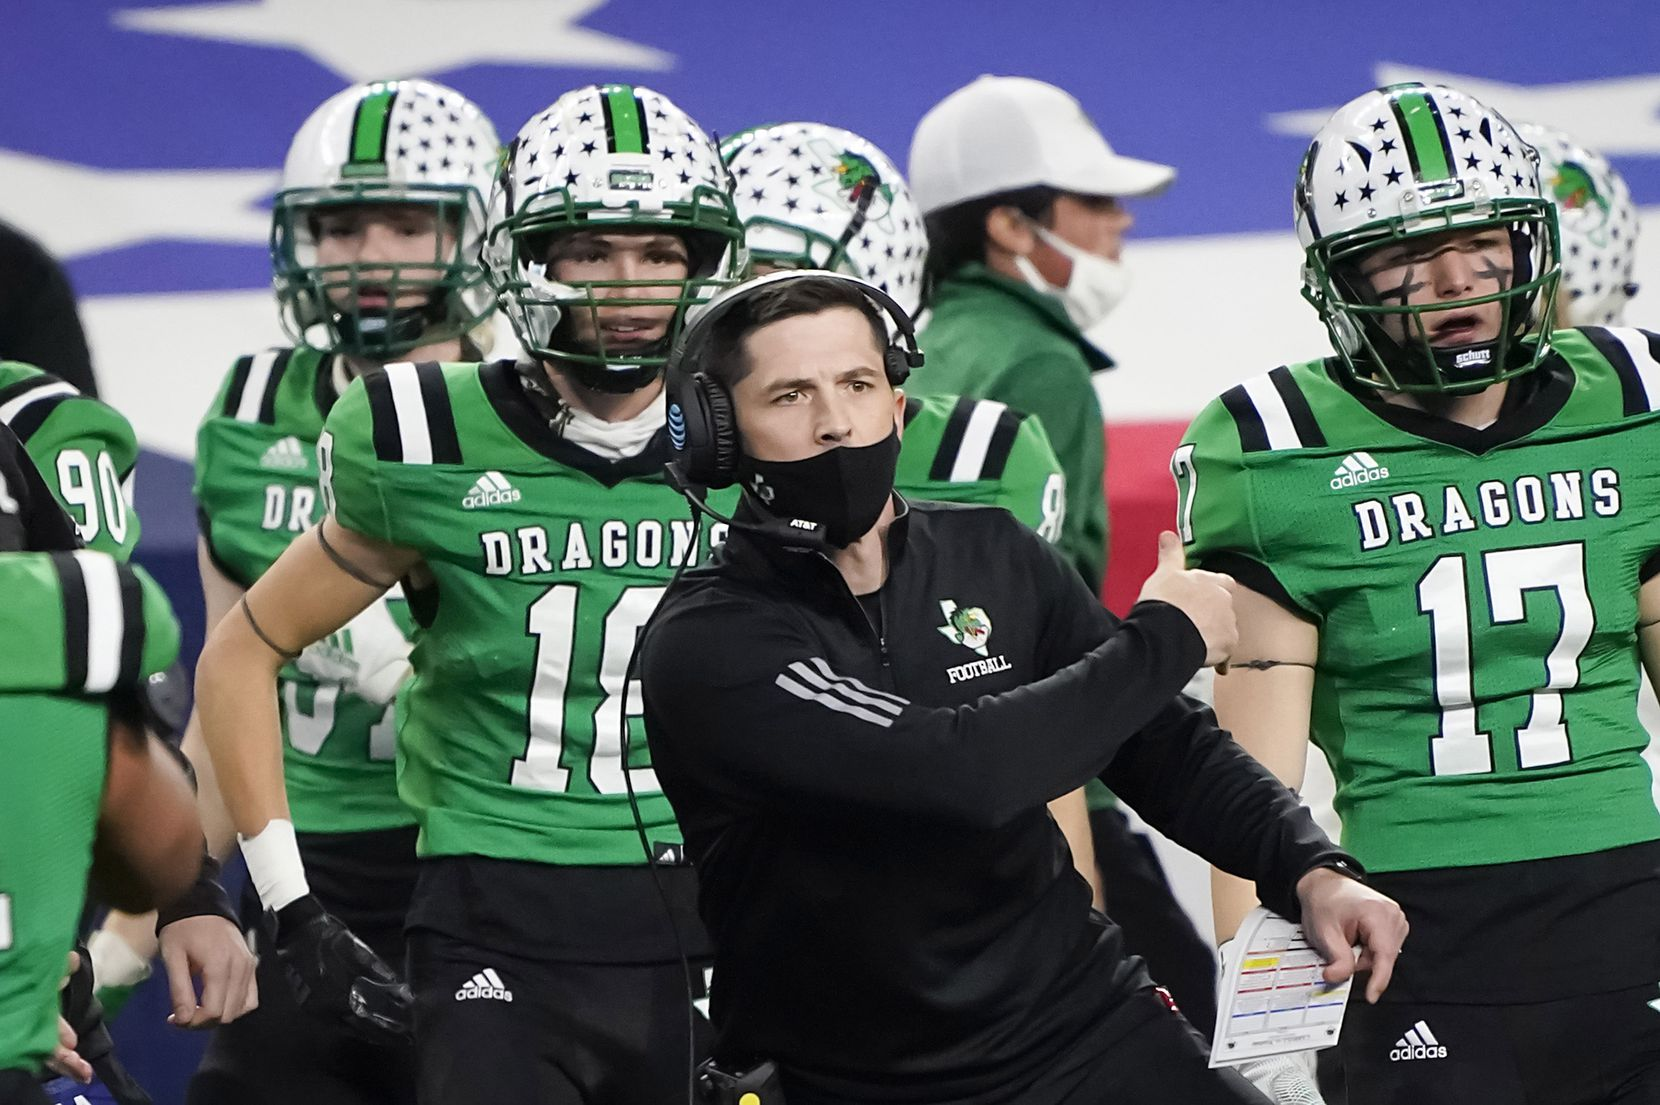 Southlake Carroll head coach Riley Dodge celebrates a touchdown during the first quarter of the Class 6A Division I state football championship game against Austin Westlake at AT&T Stadium on Saturday, Jan. 16, 2021, in Arlington, Texas.